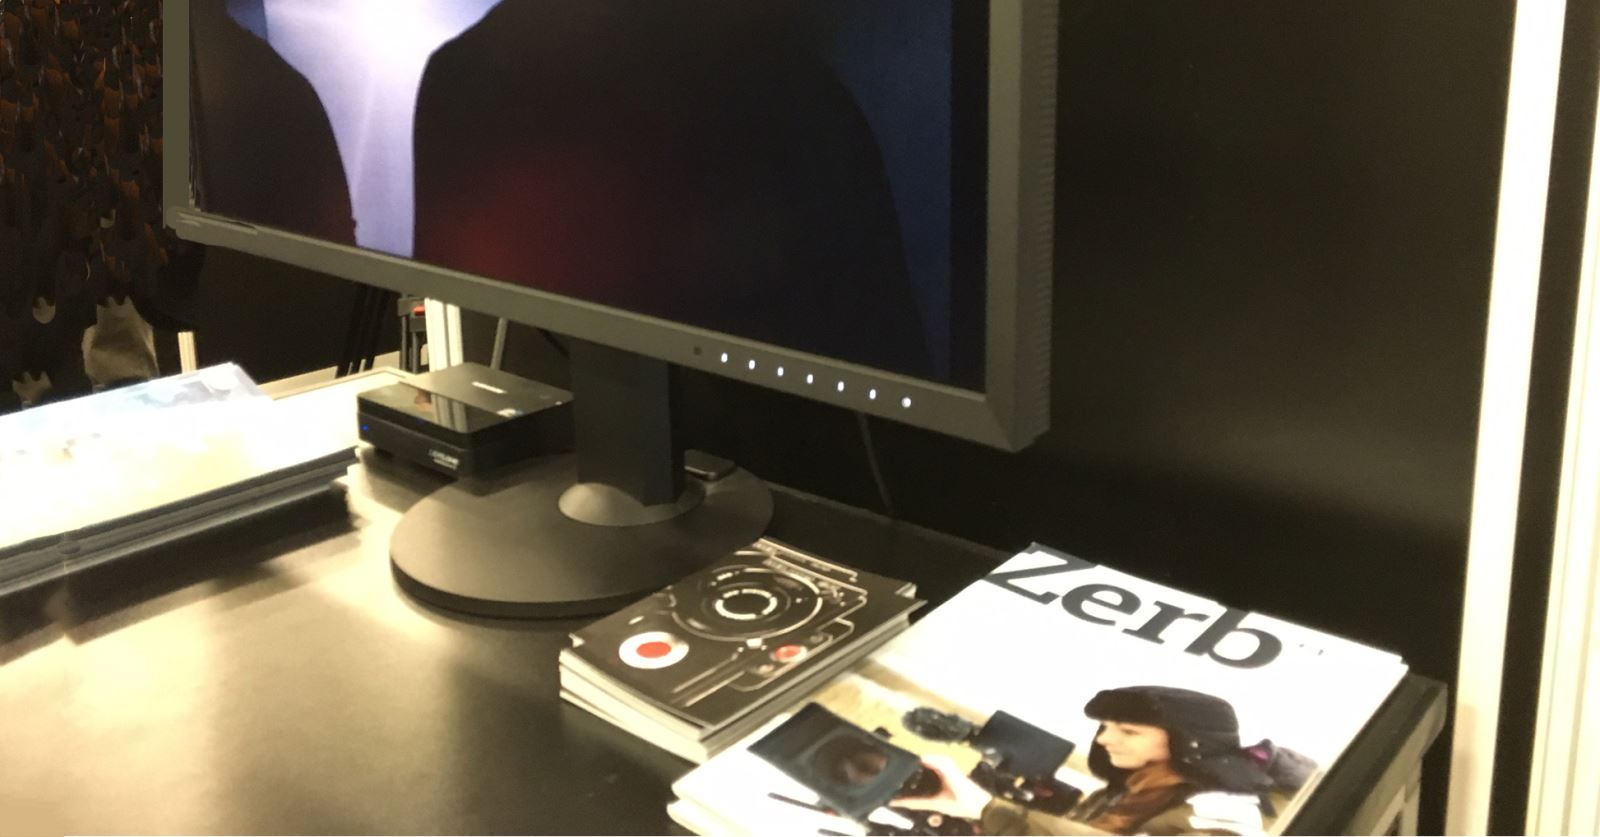 The current issue of Zerb magazine on display in the RED Digital Camera booth at the Media Production Show